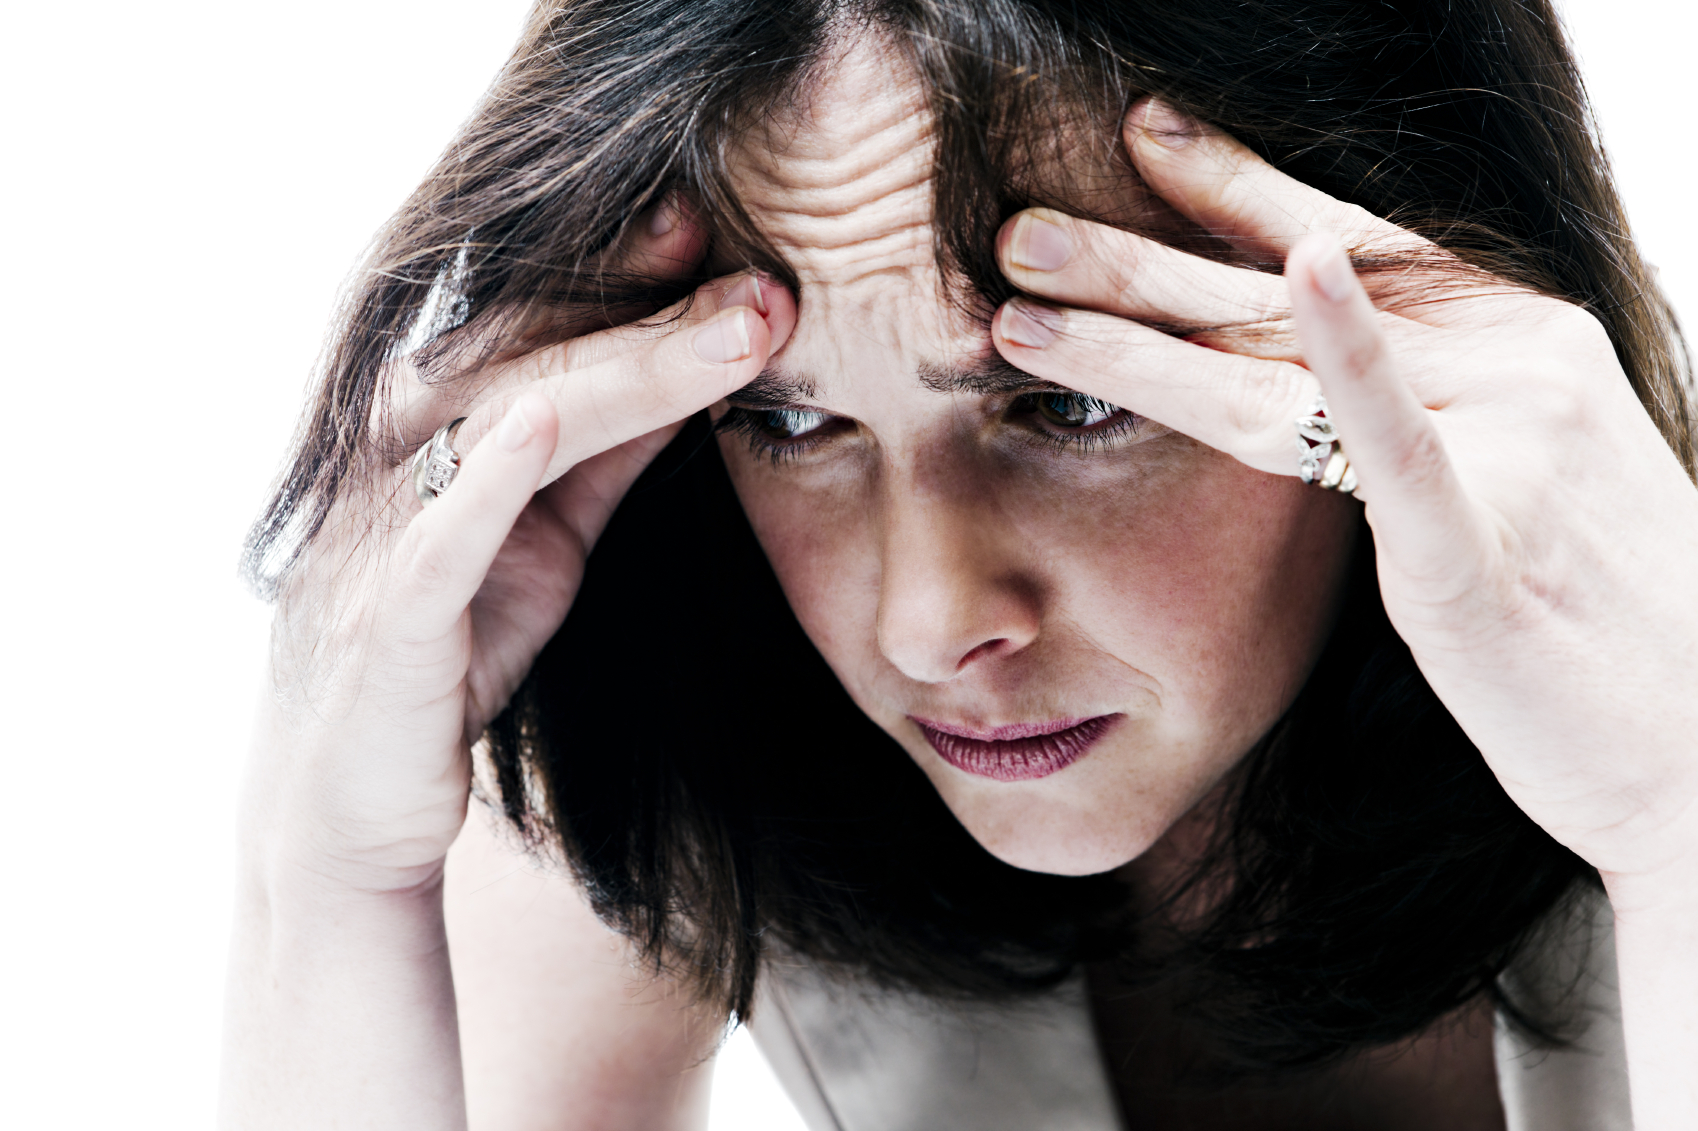 Anxiety worries? Sooner support prevents lingering illness